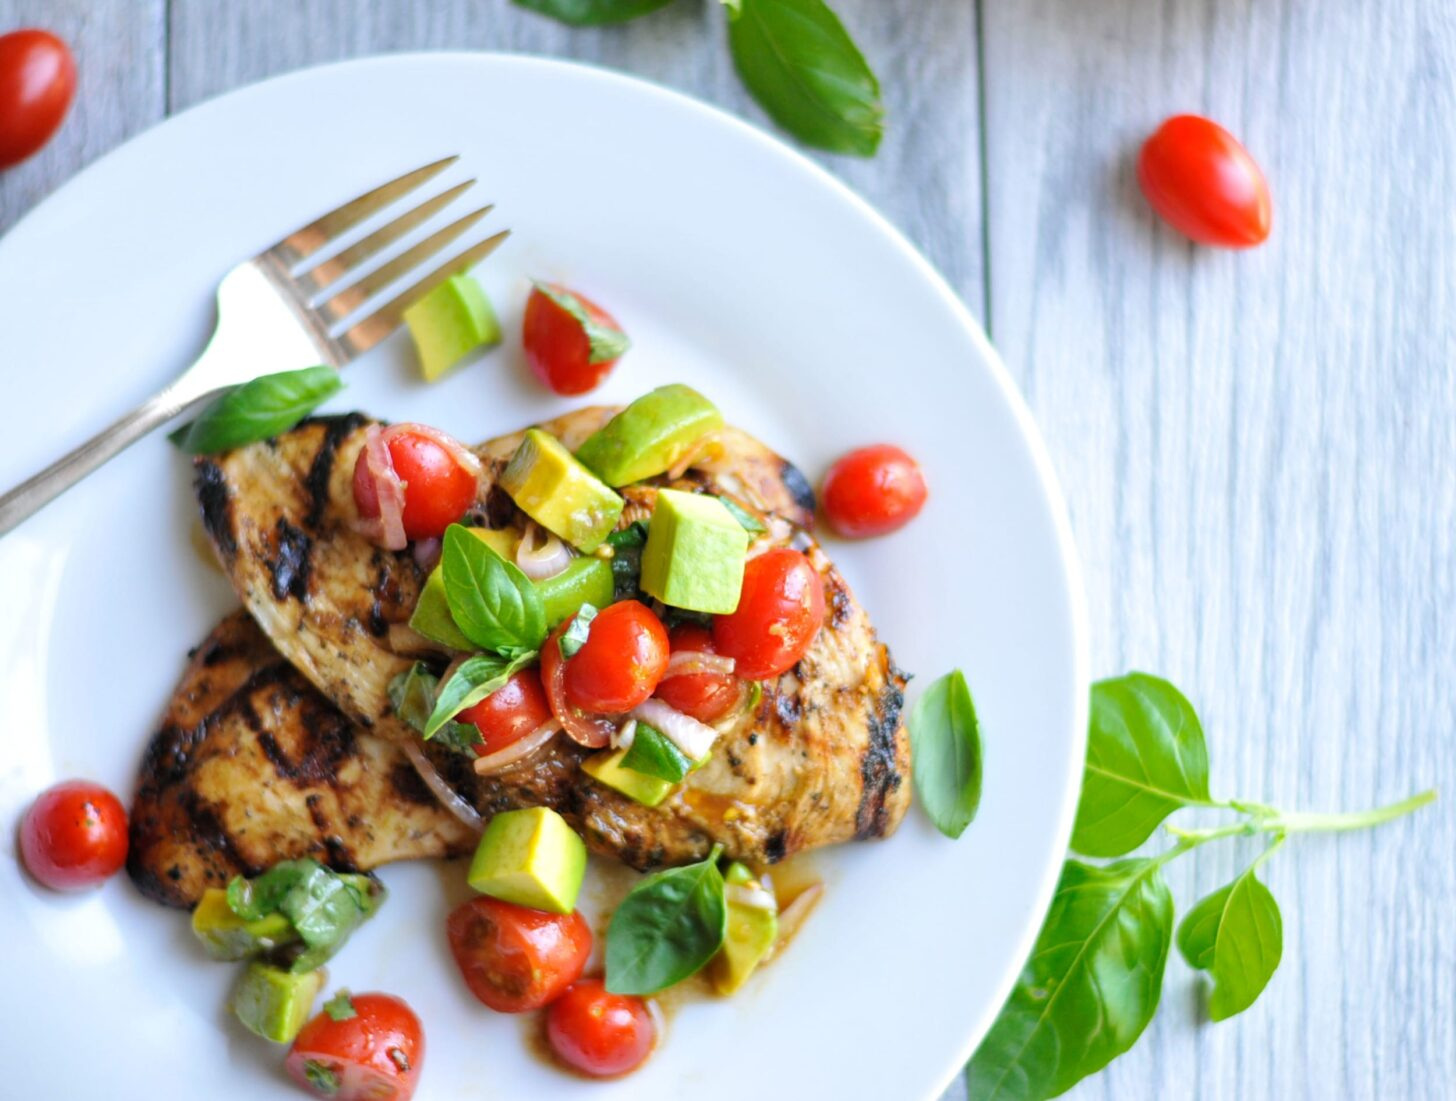 Image of Balsamic Grilled Chicken with Avocado Cherry Tomato Salad